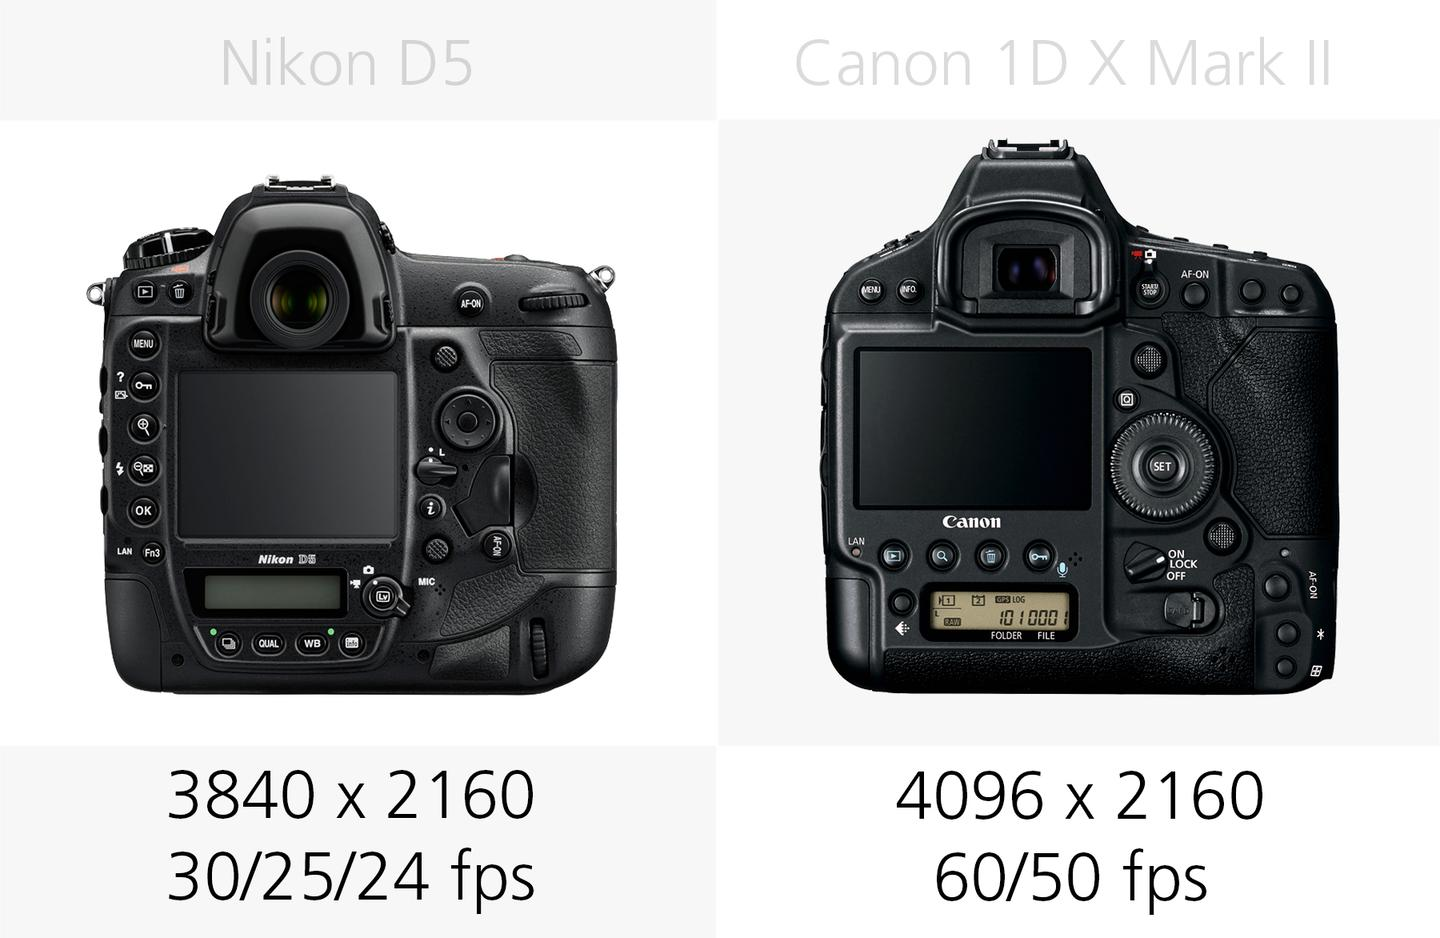 4K video recording comparison of the Nikon D5 and Canon 1D X Mark II